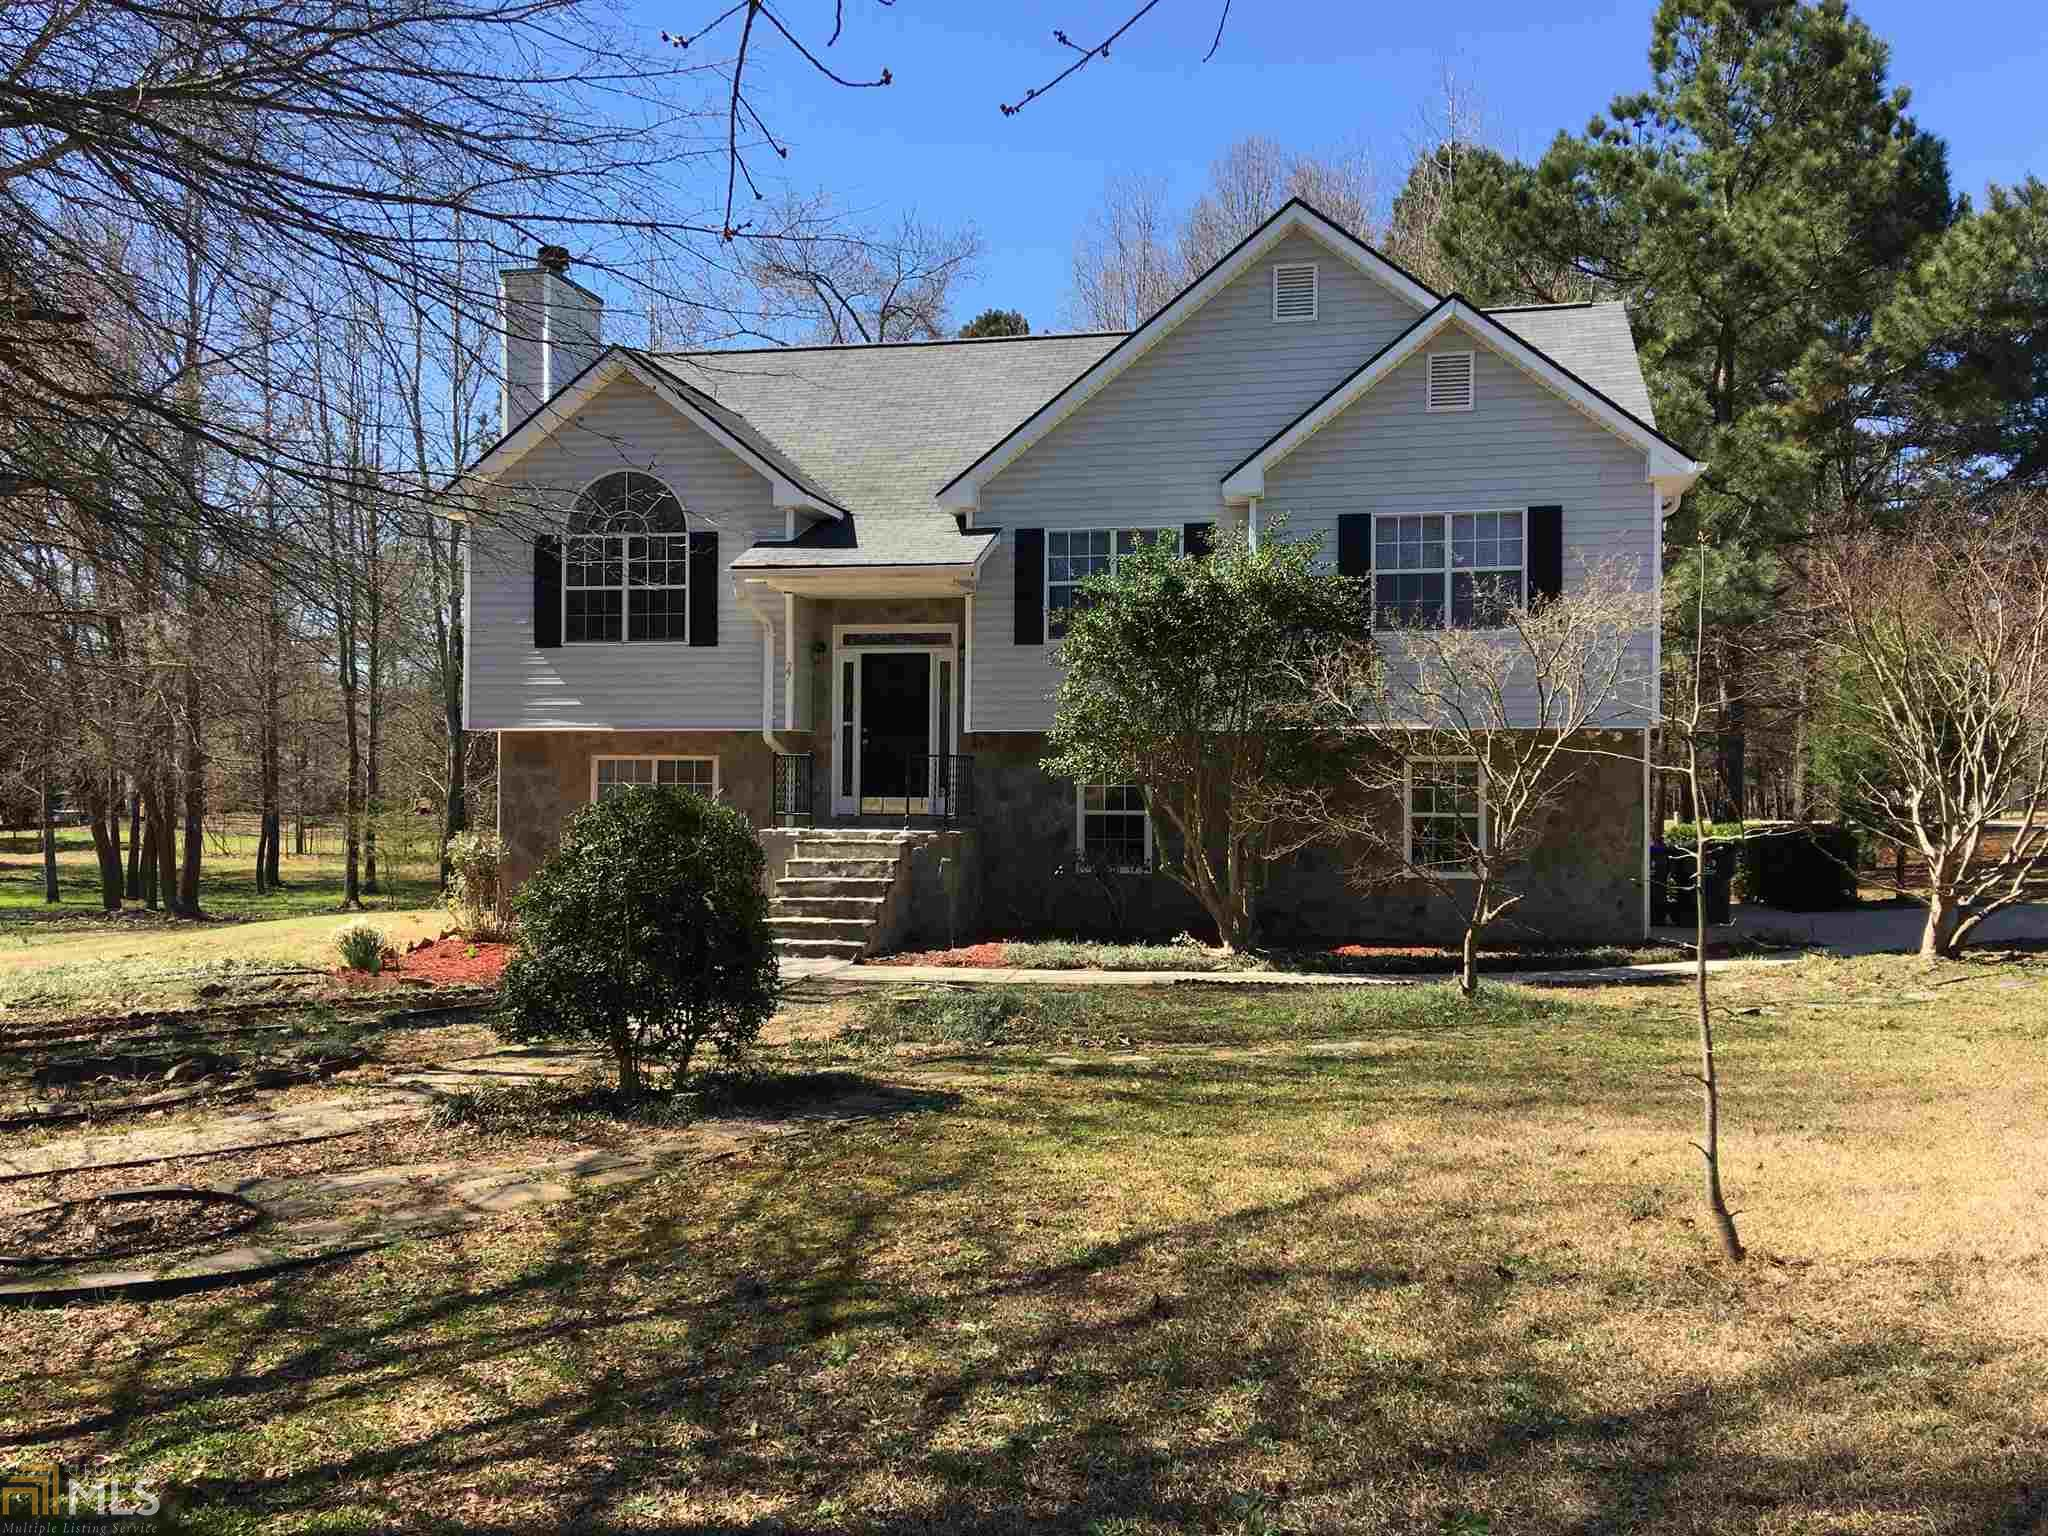 27 Blue Bird Ln, Jefferson, GA 30549